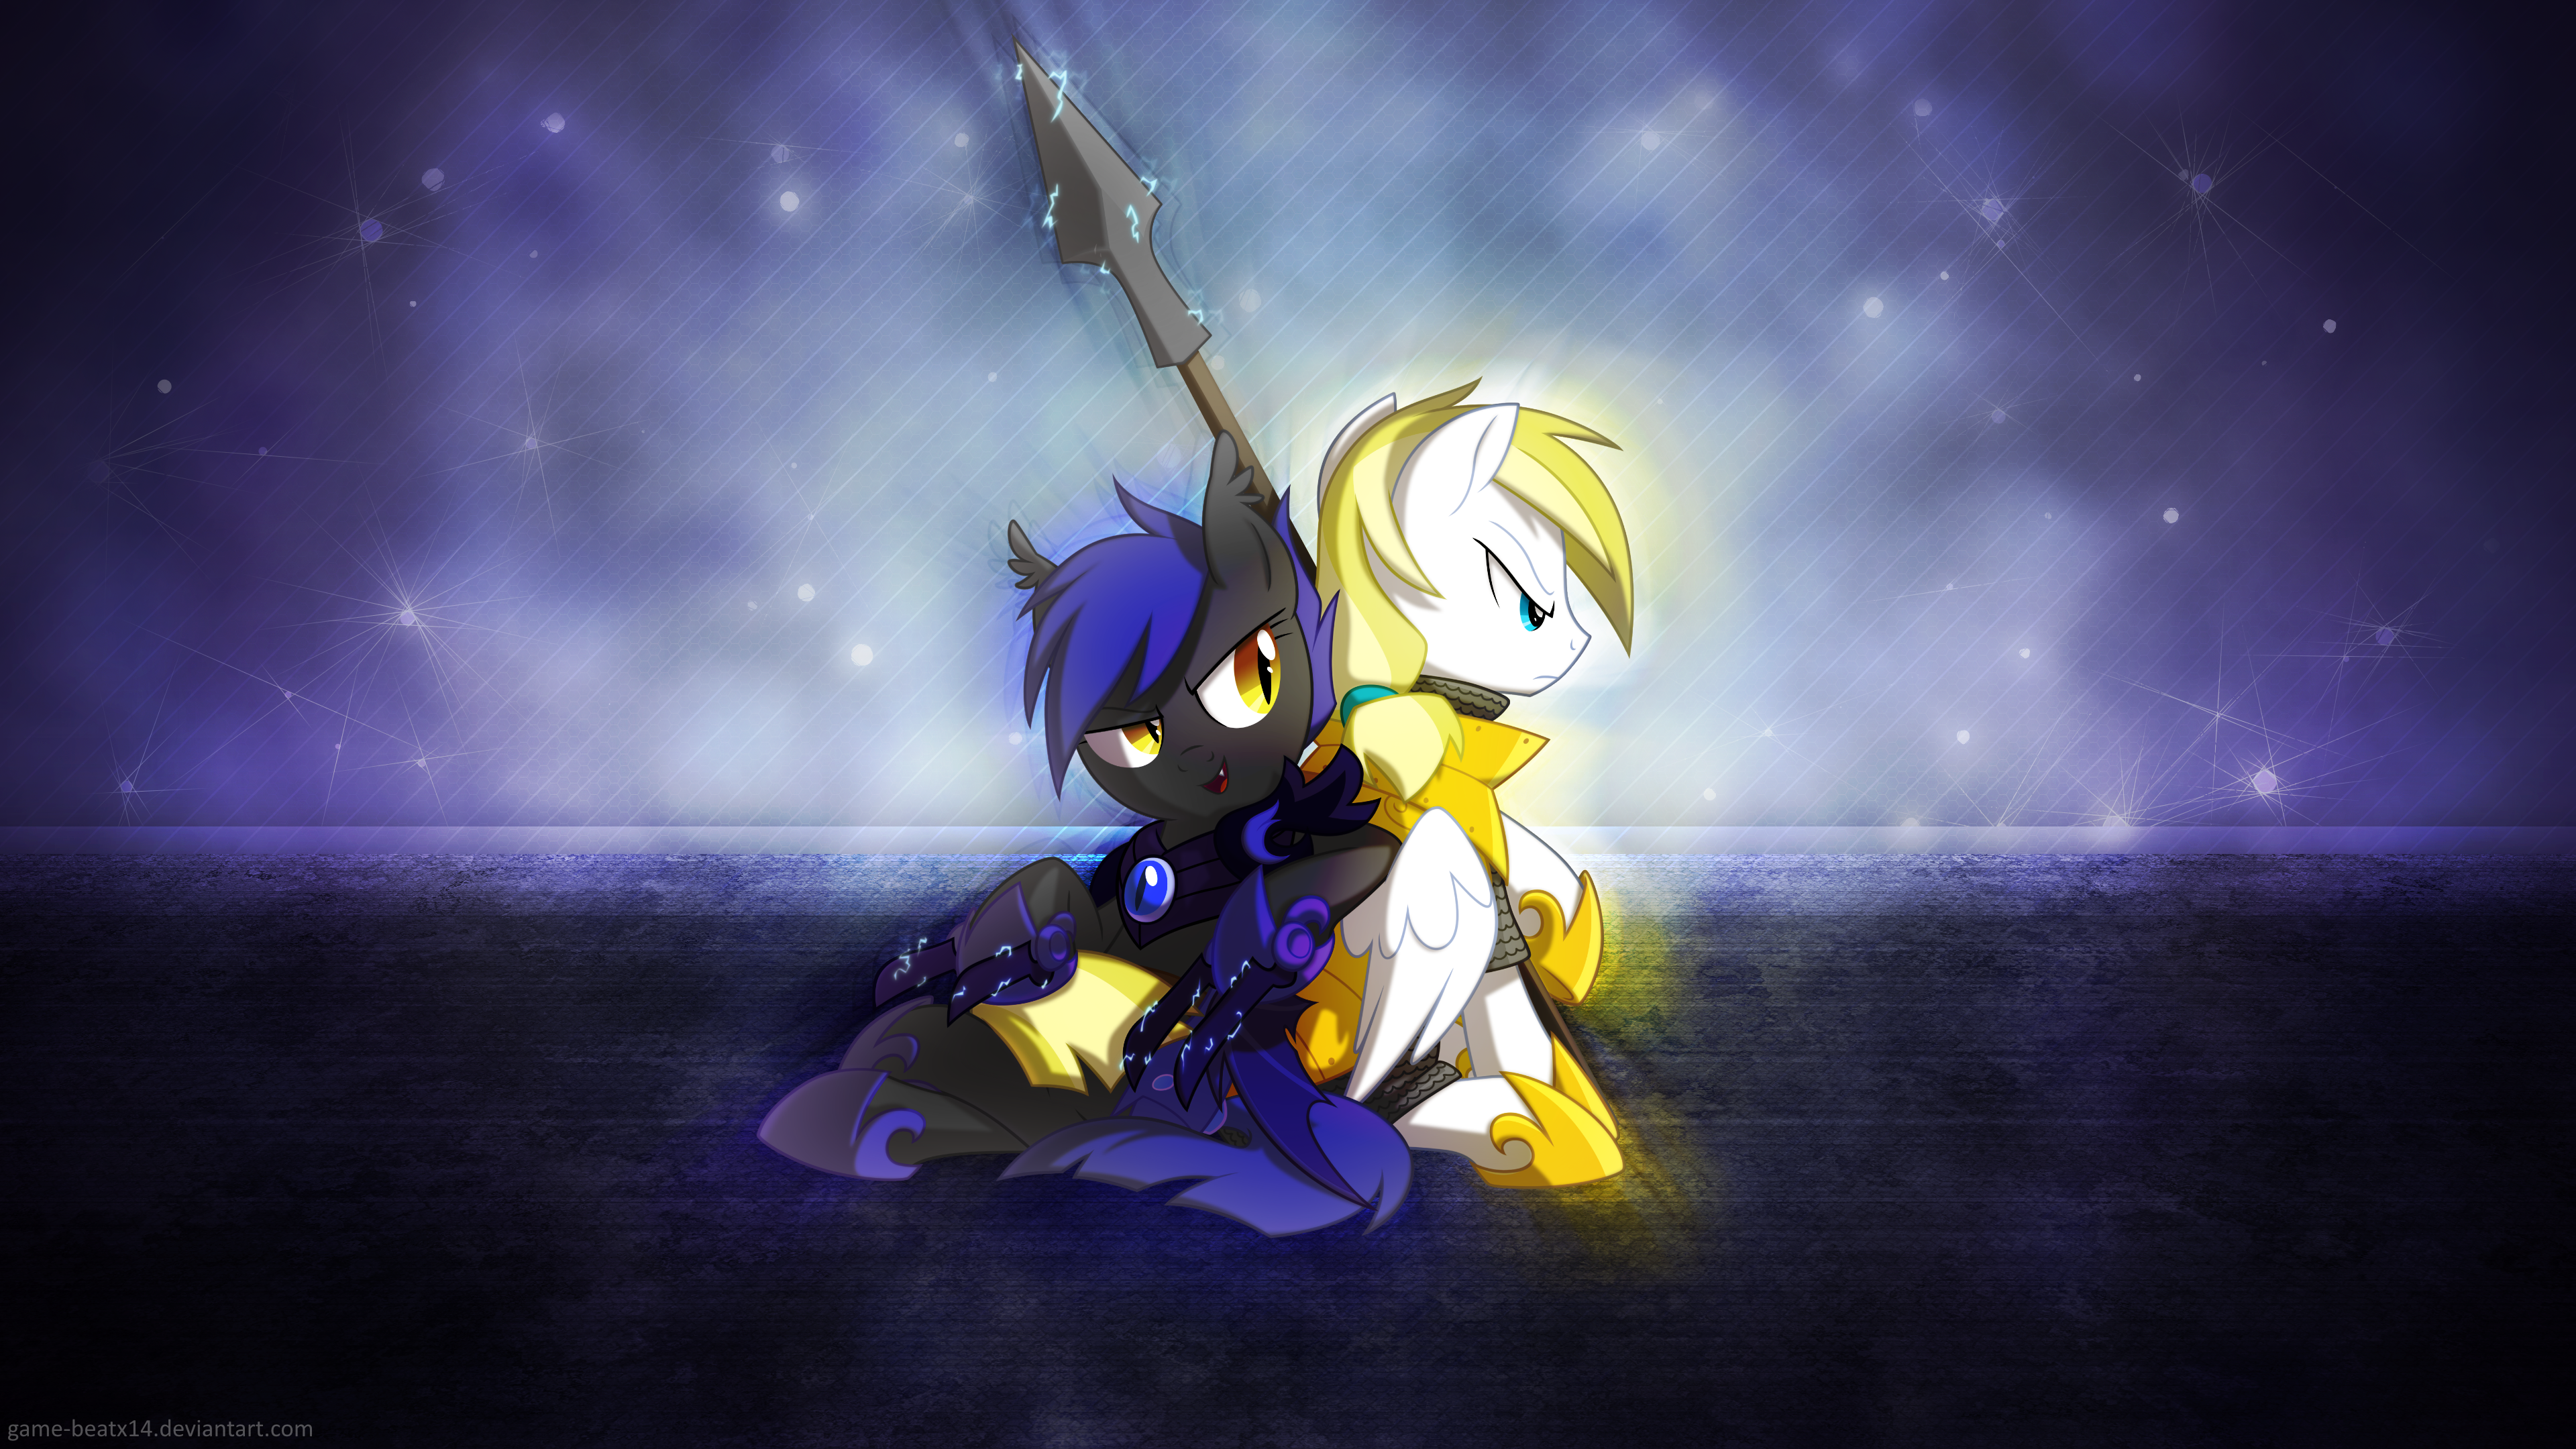 Guardians of Night and Day by Equestria-Prevails and Game-BeatX14